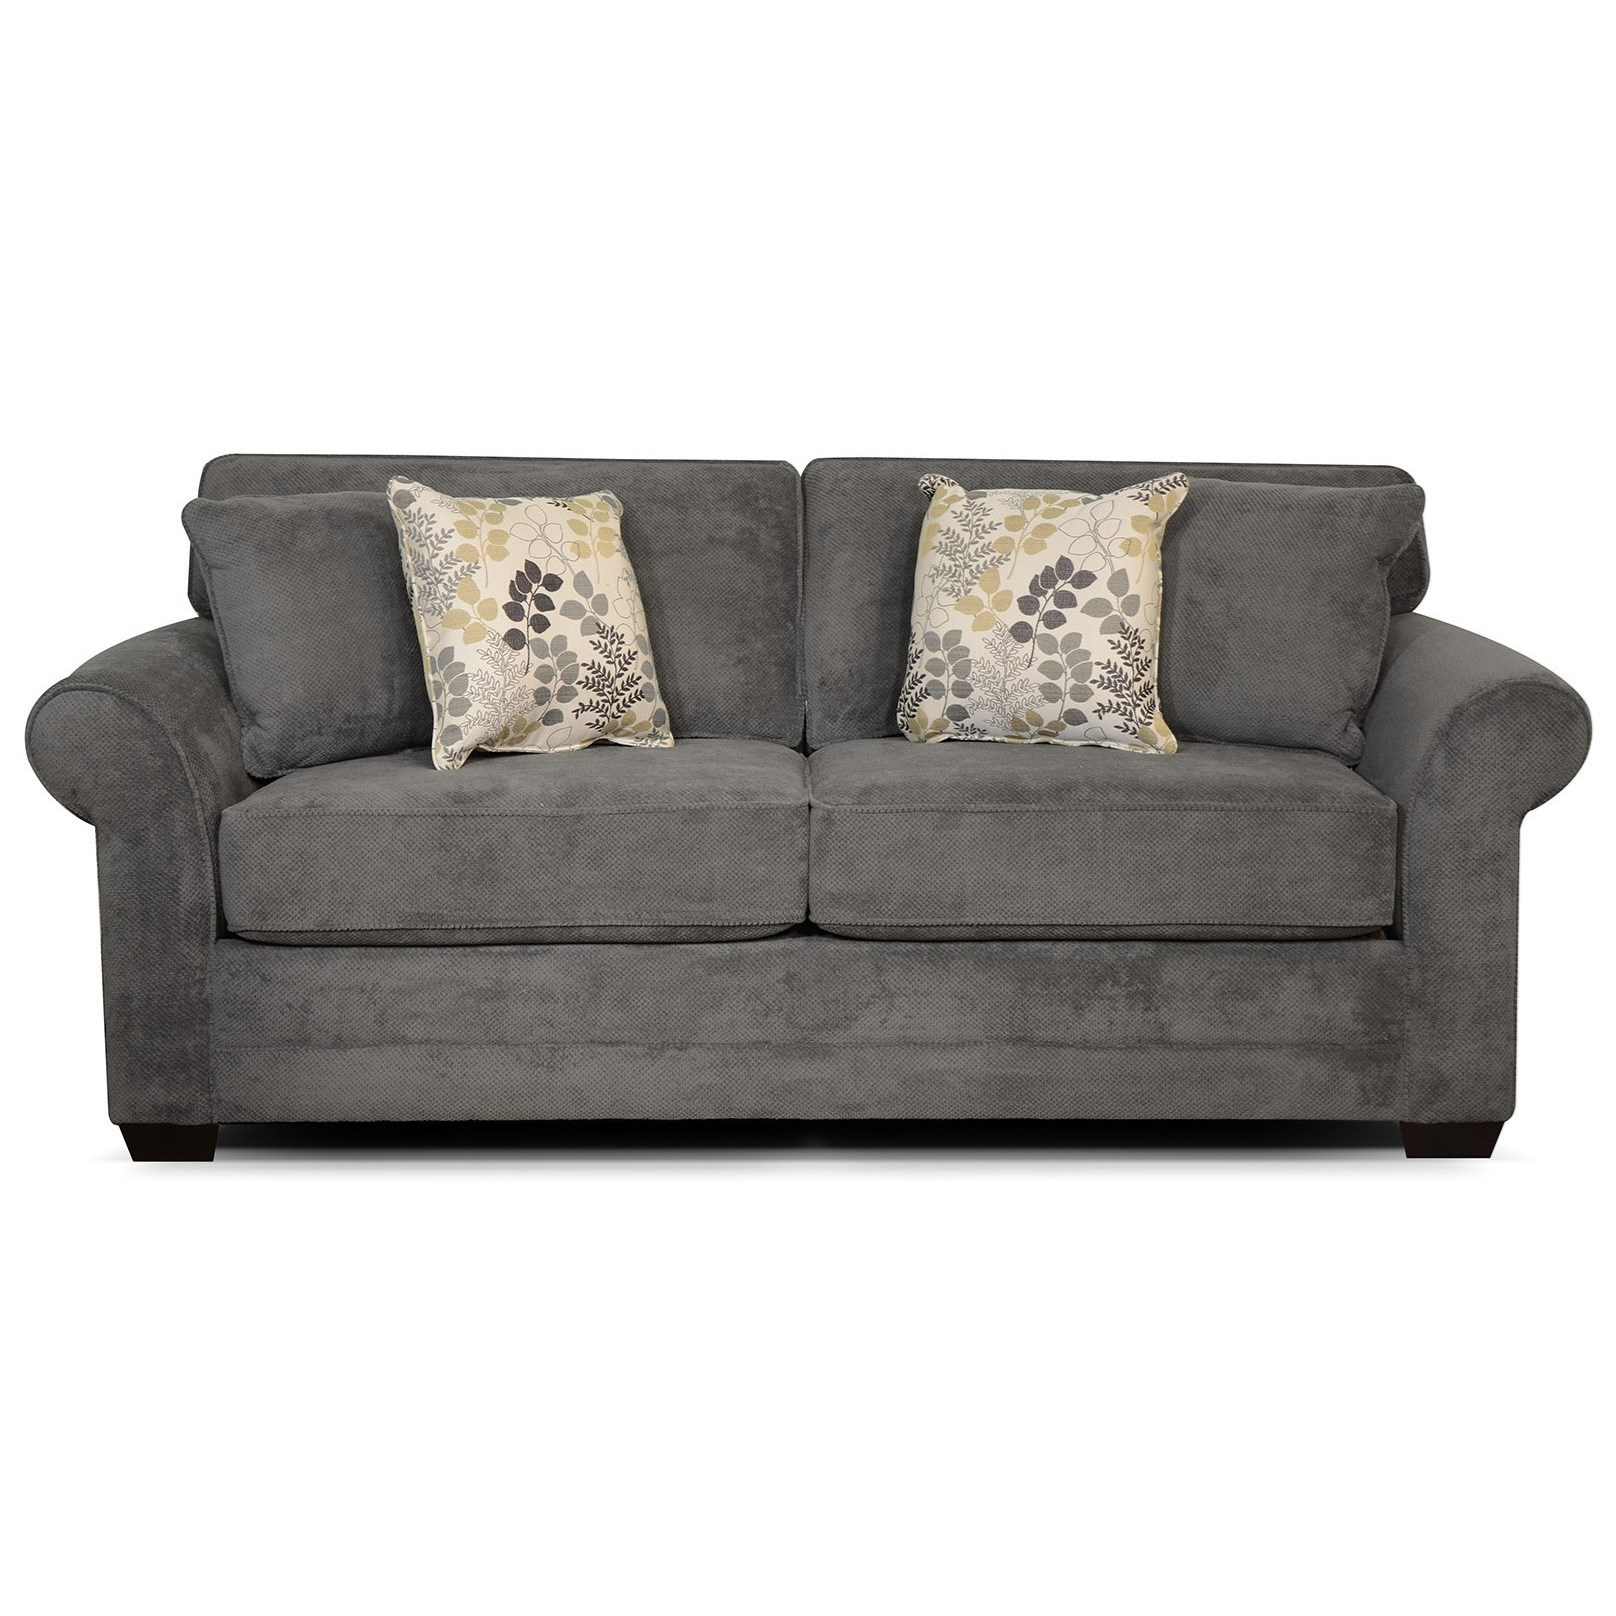 Brantley Upholstered Sofa by England at Van Hill Furniture